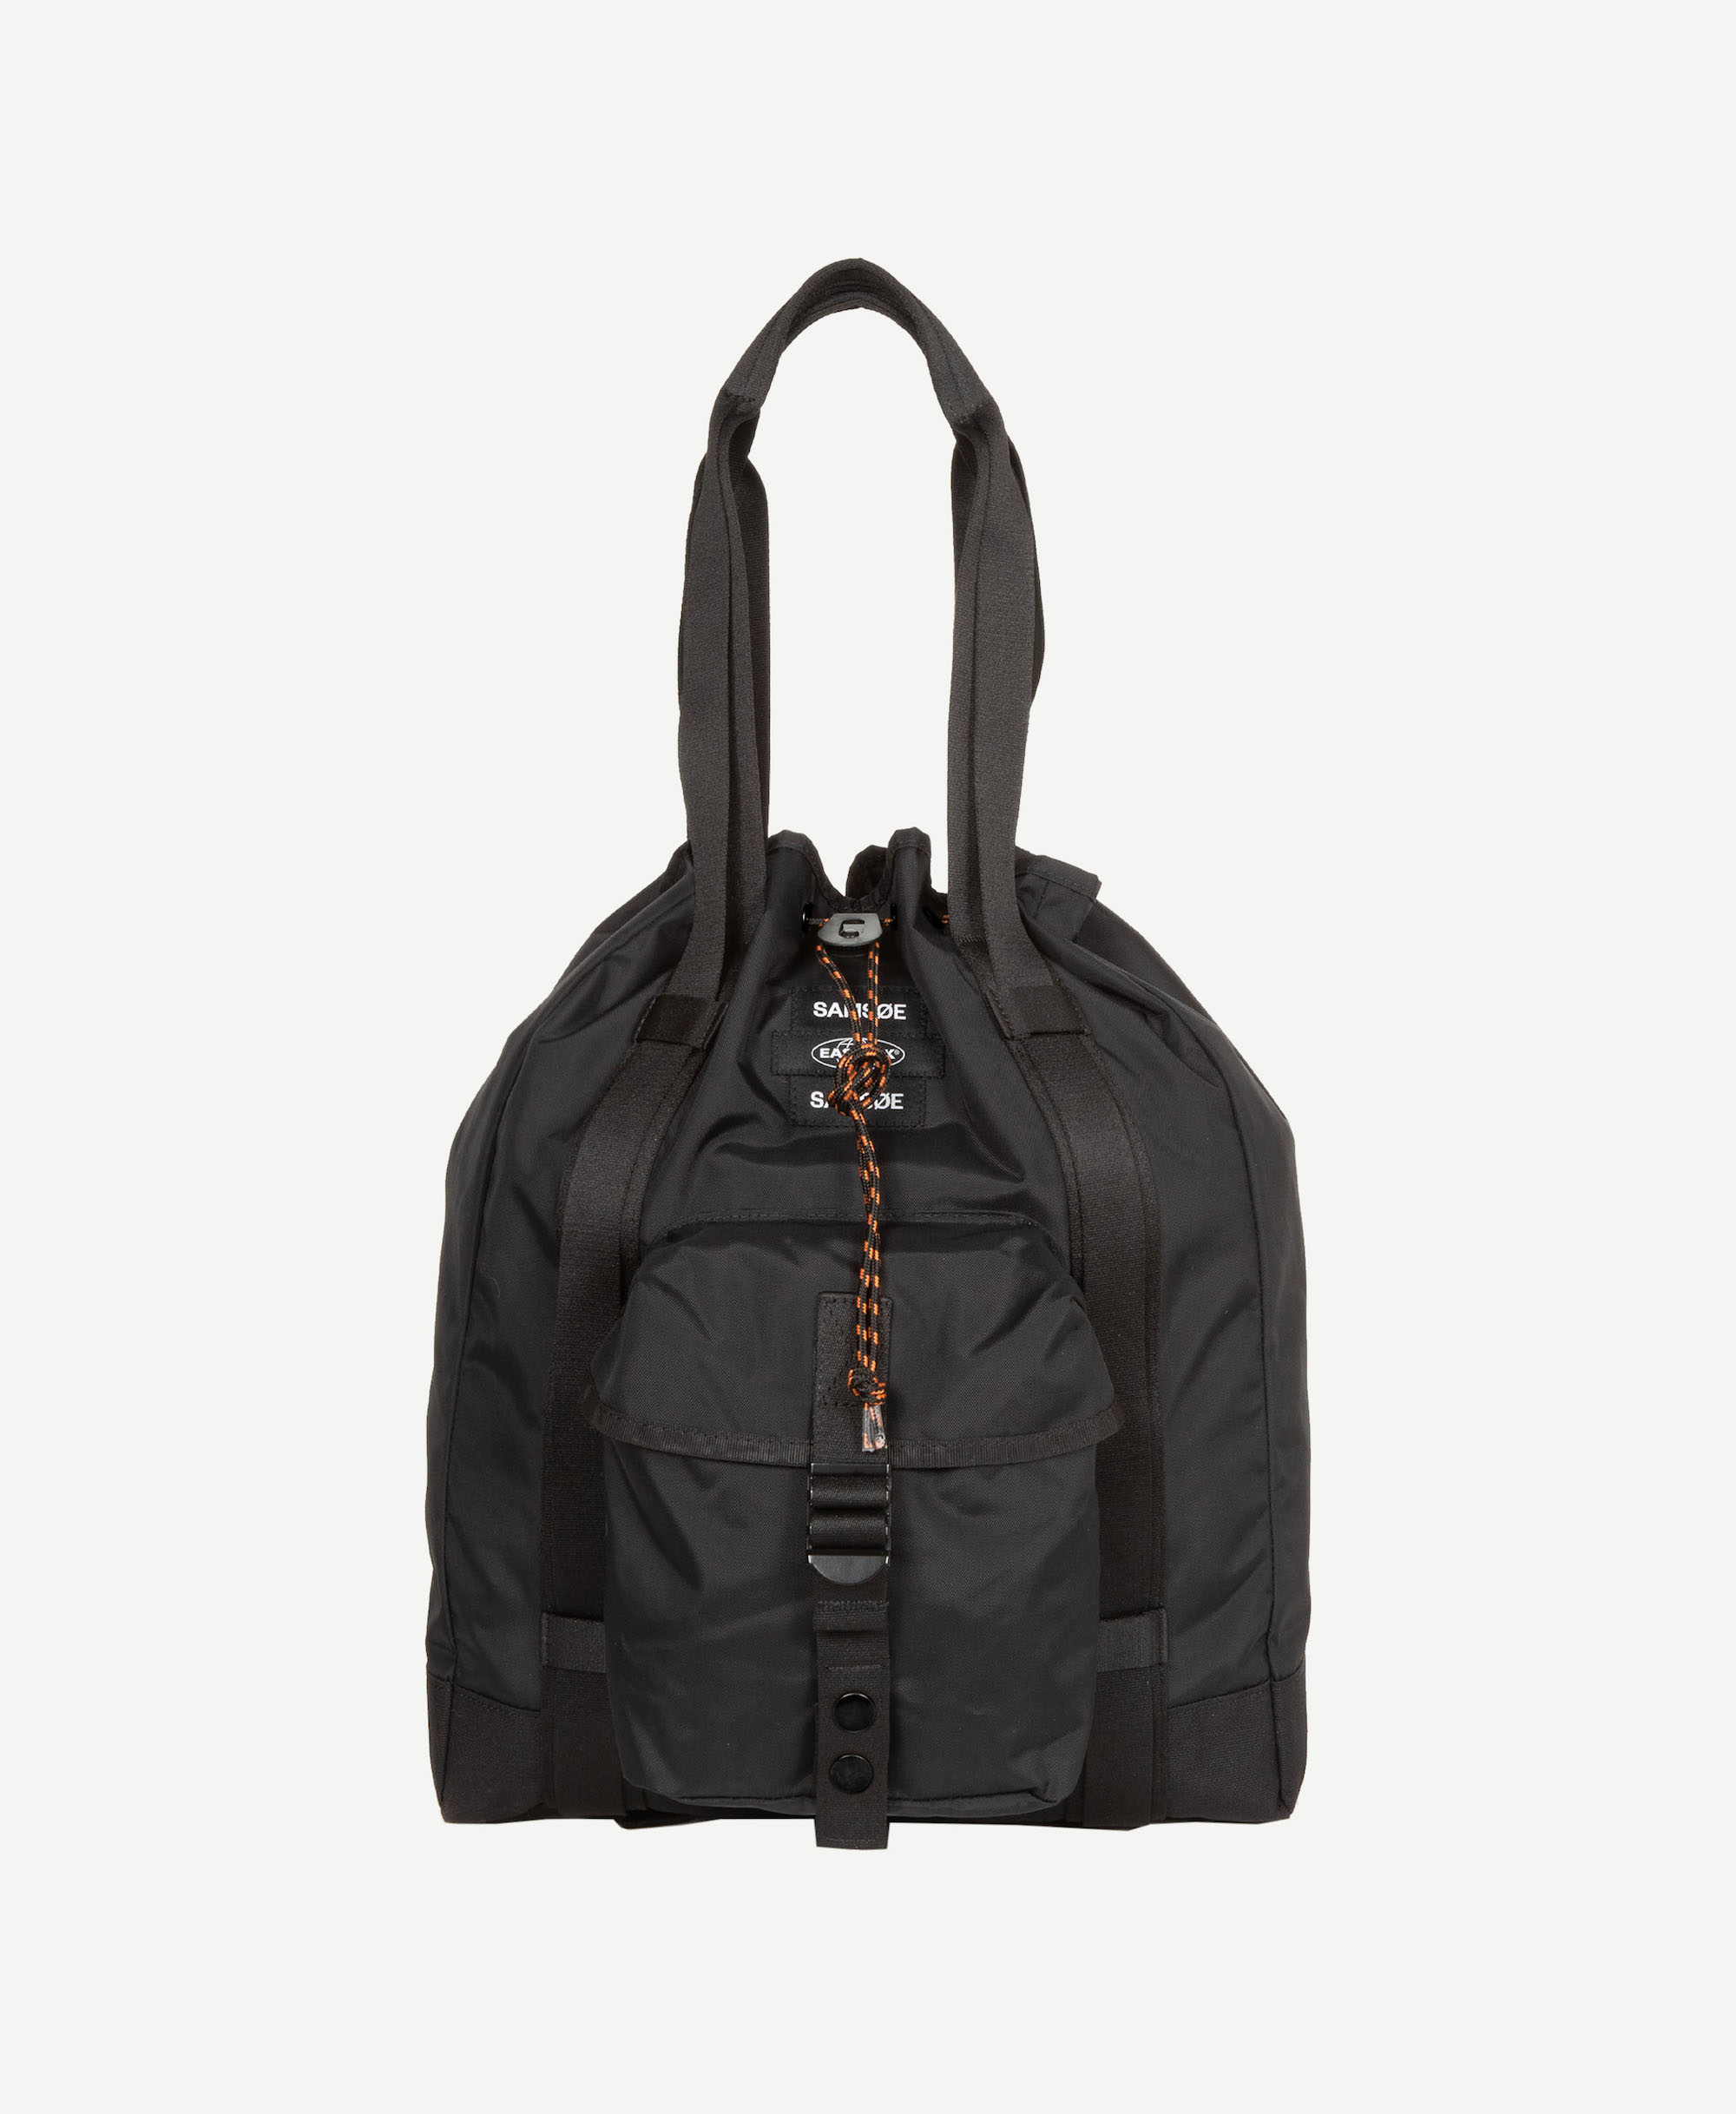 SAMSOE SAMSOE_SS21_EASTPAK_TOTE BAG 13052_BLACK